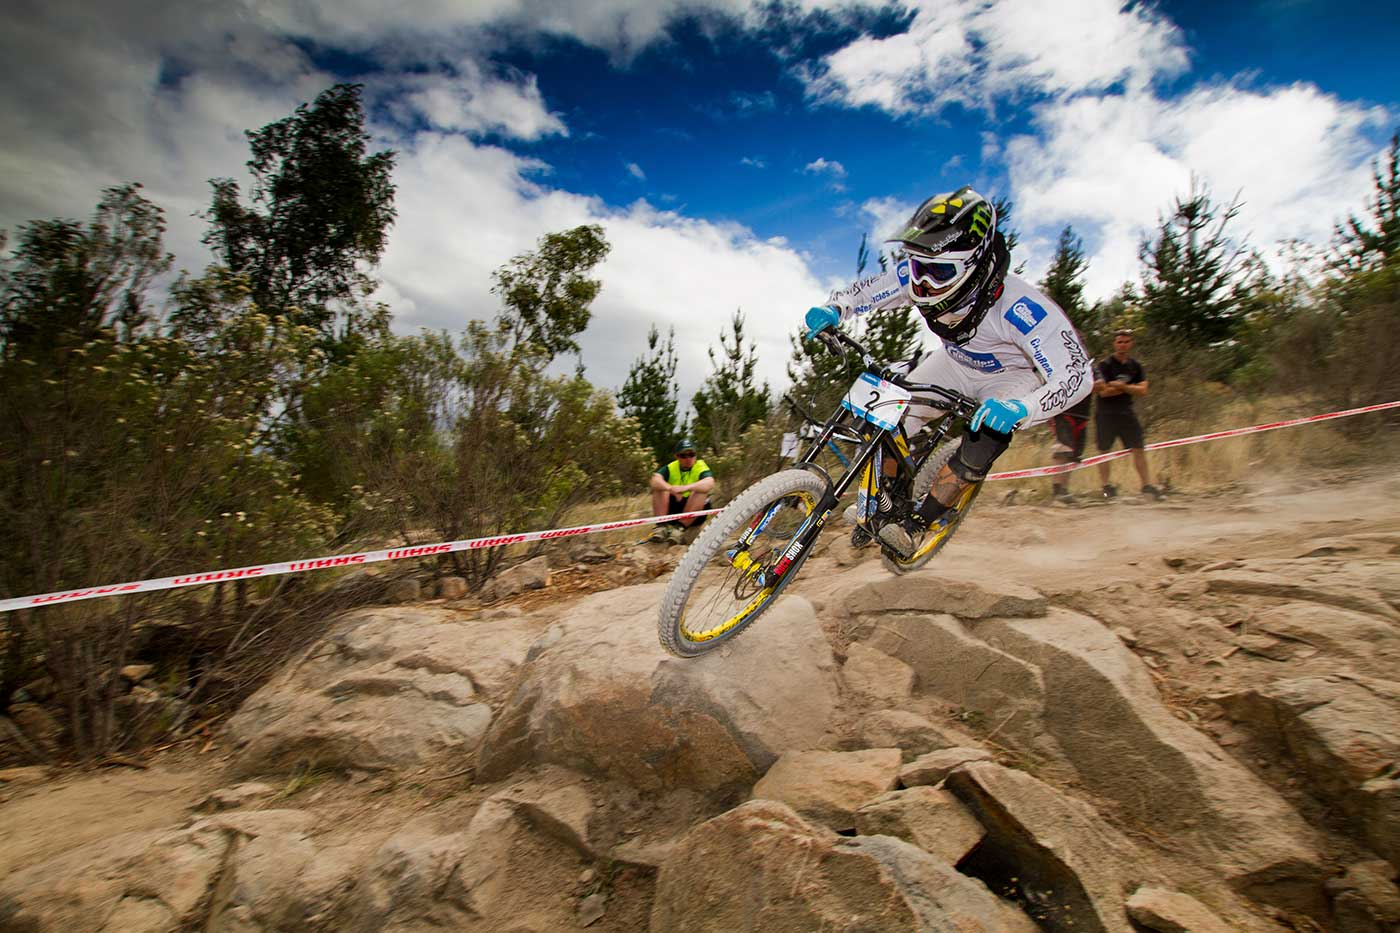 Sam Hill racing at Mount Stromlo Mountain Bike Park, Canberra. - click to view larger image